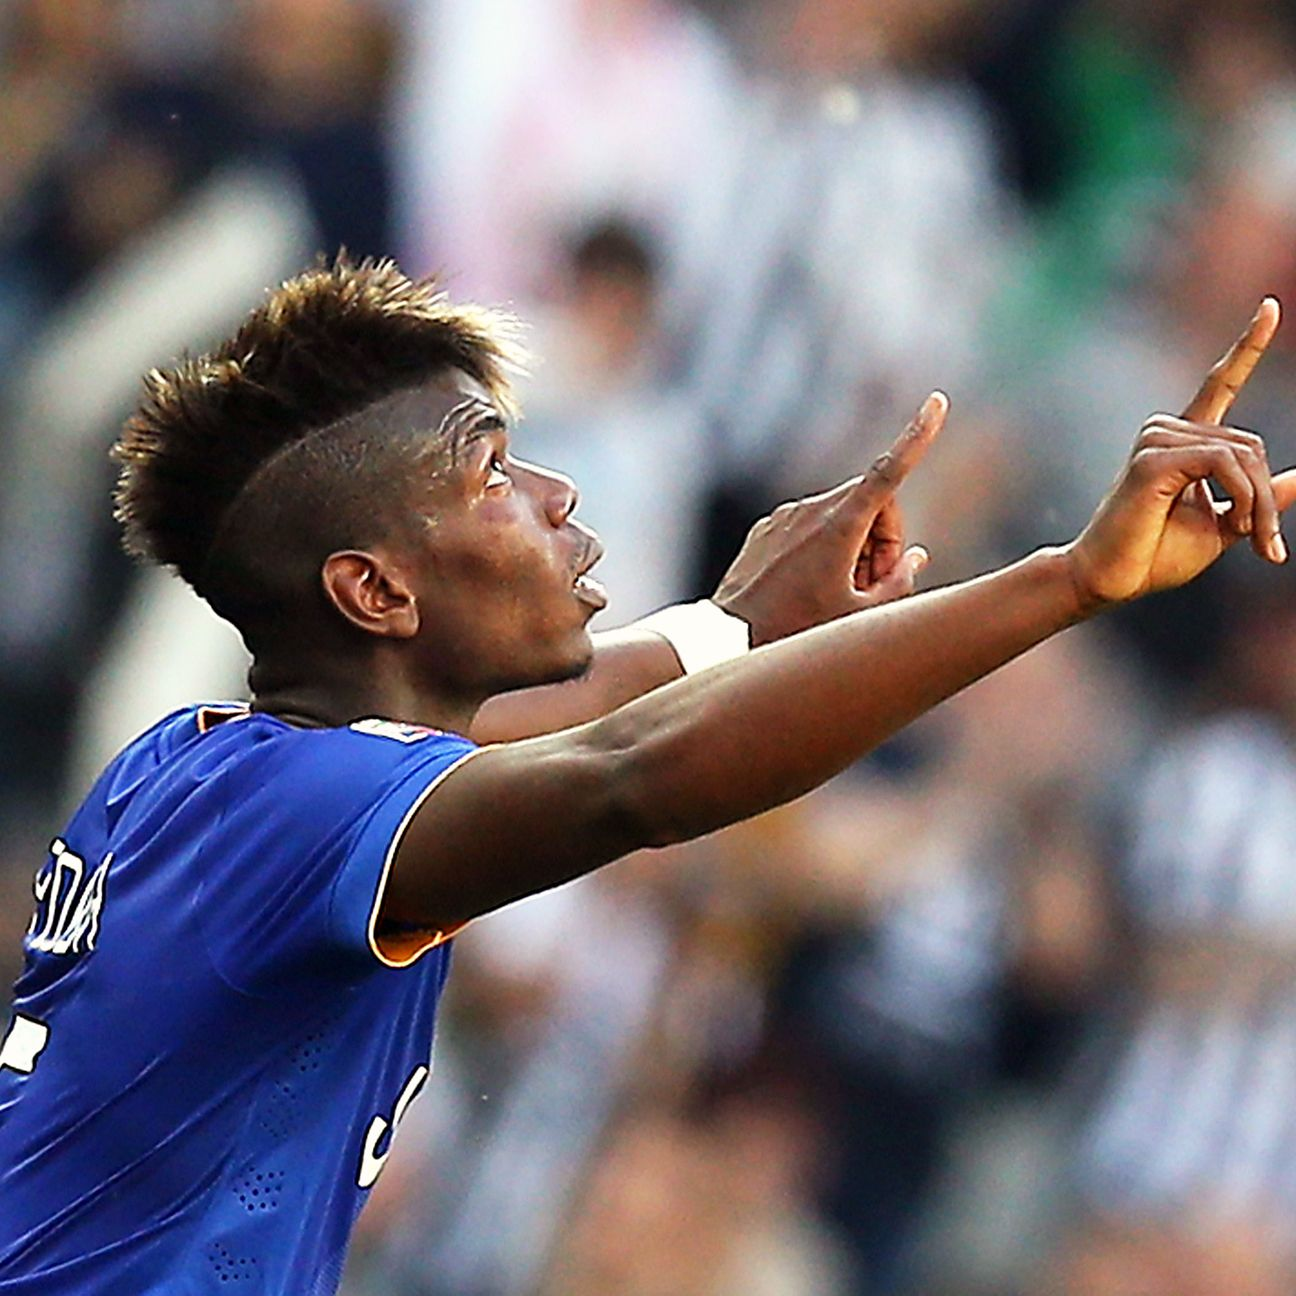 Paul Pogba made an auspicious return from injury with a goal in Juve's 1-1 draw with Cagliari.